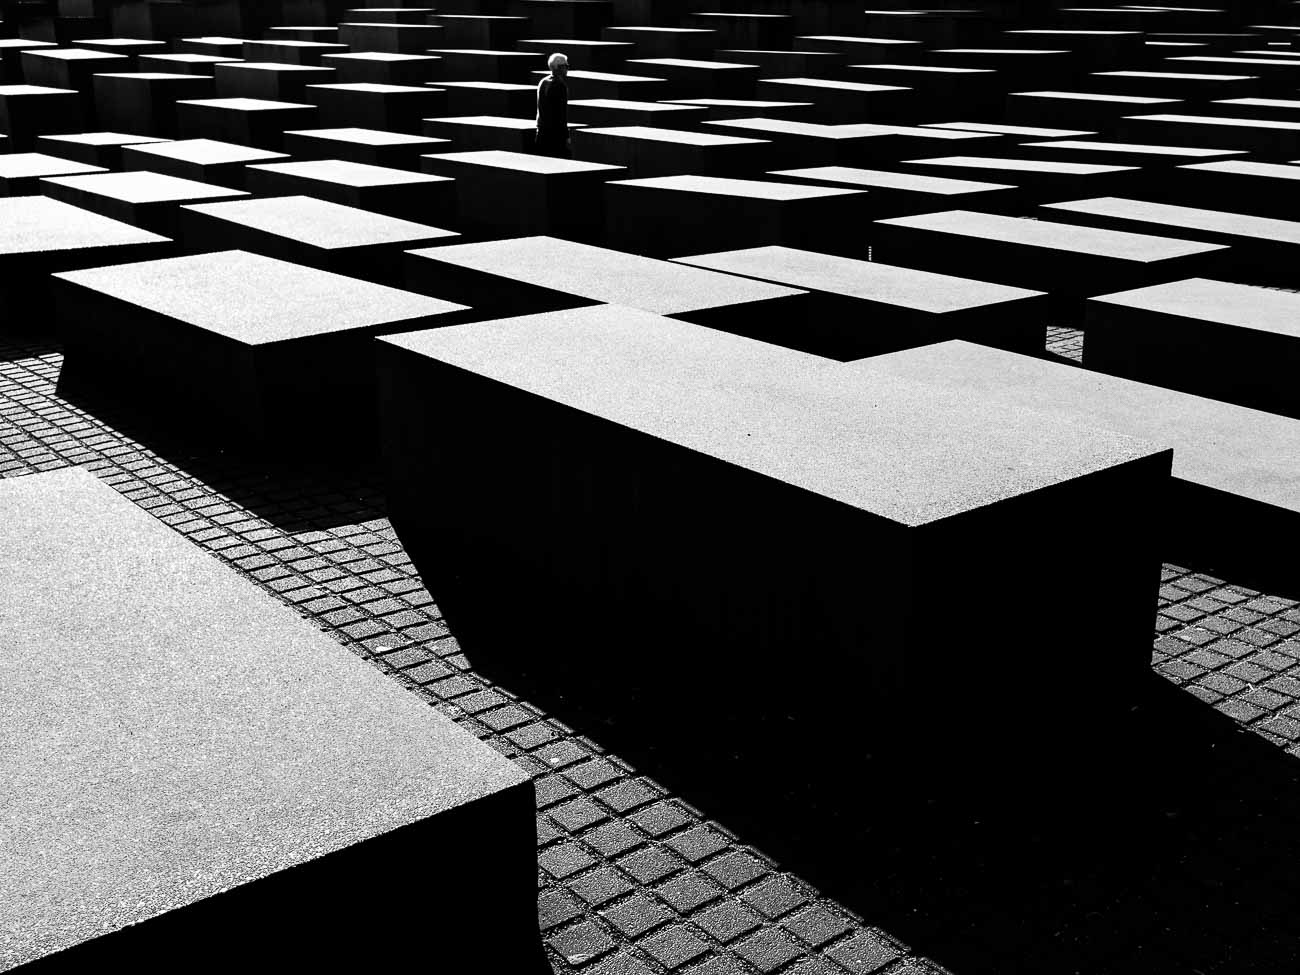 holocaust memorial berlin Martin U Waltz street photography